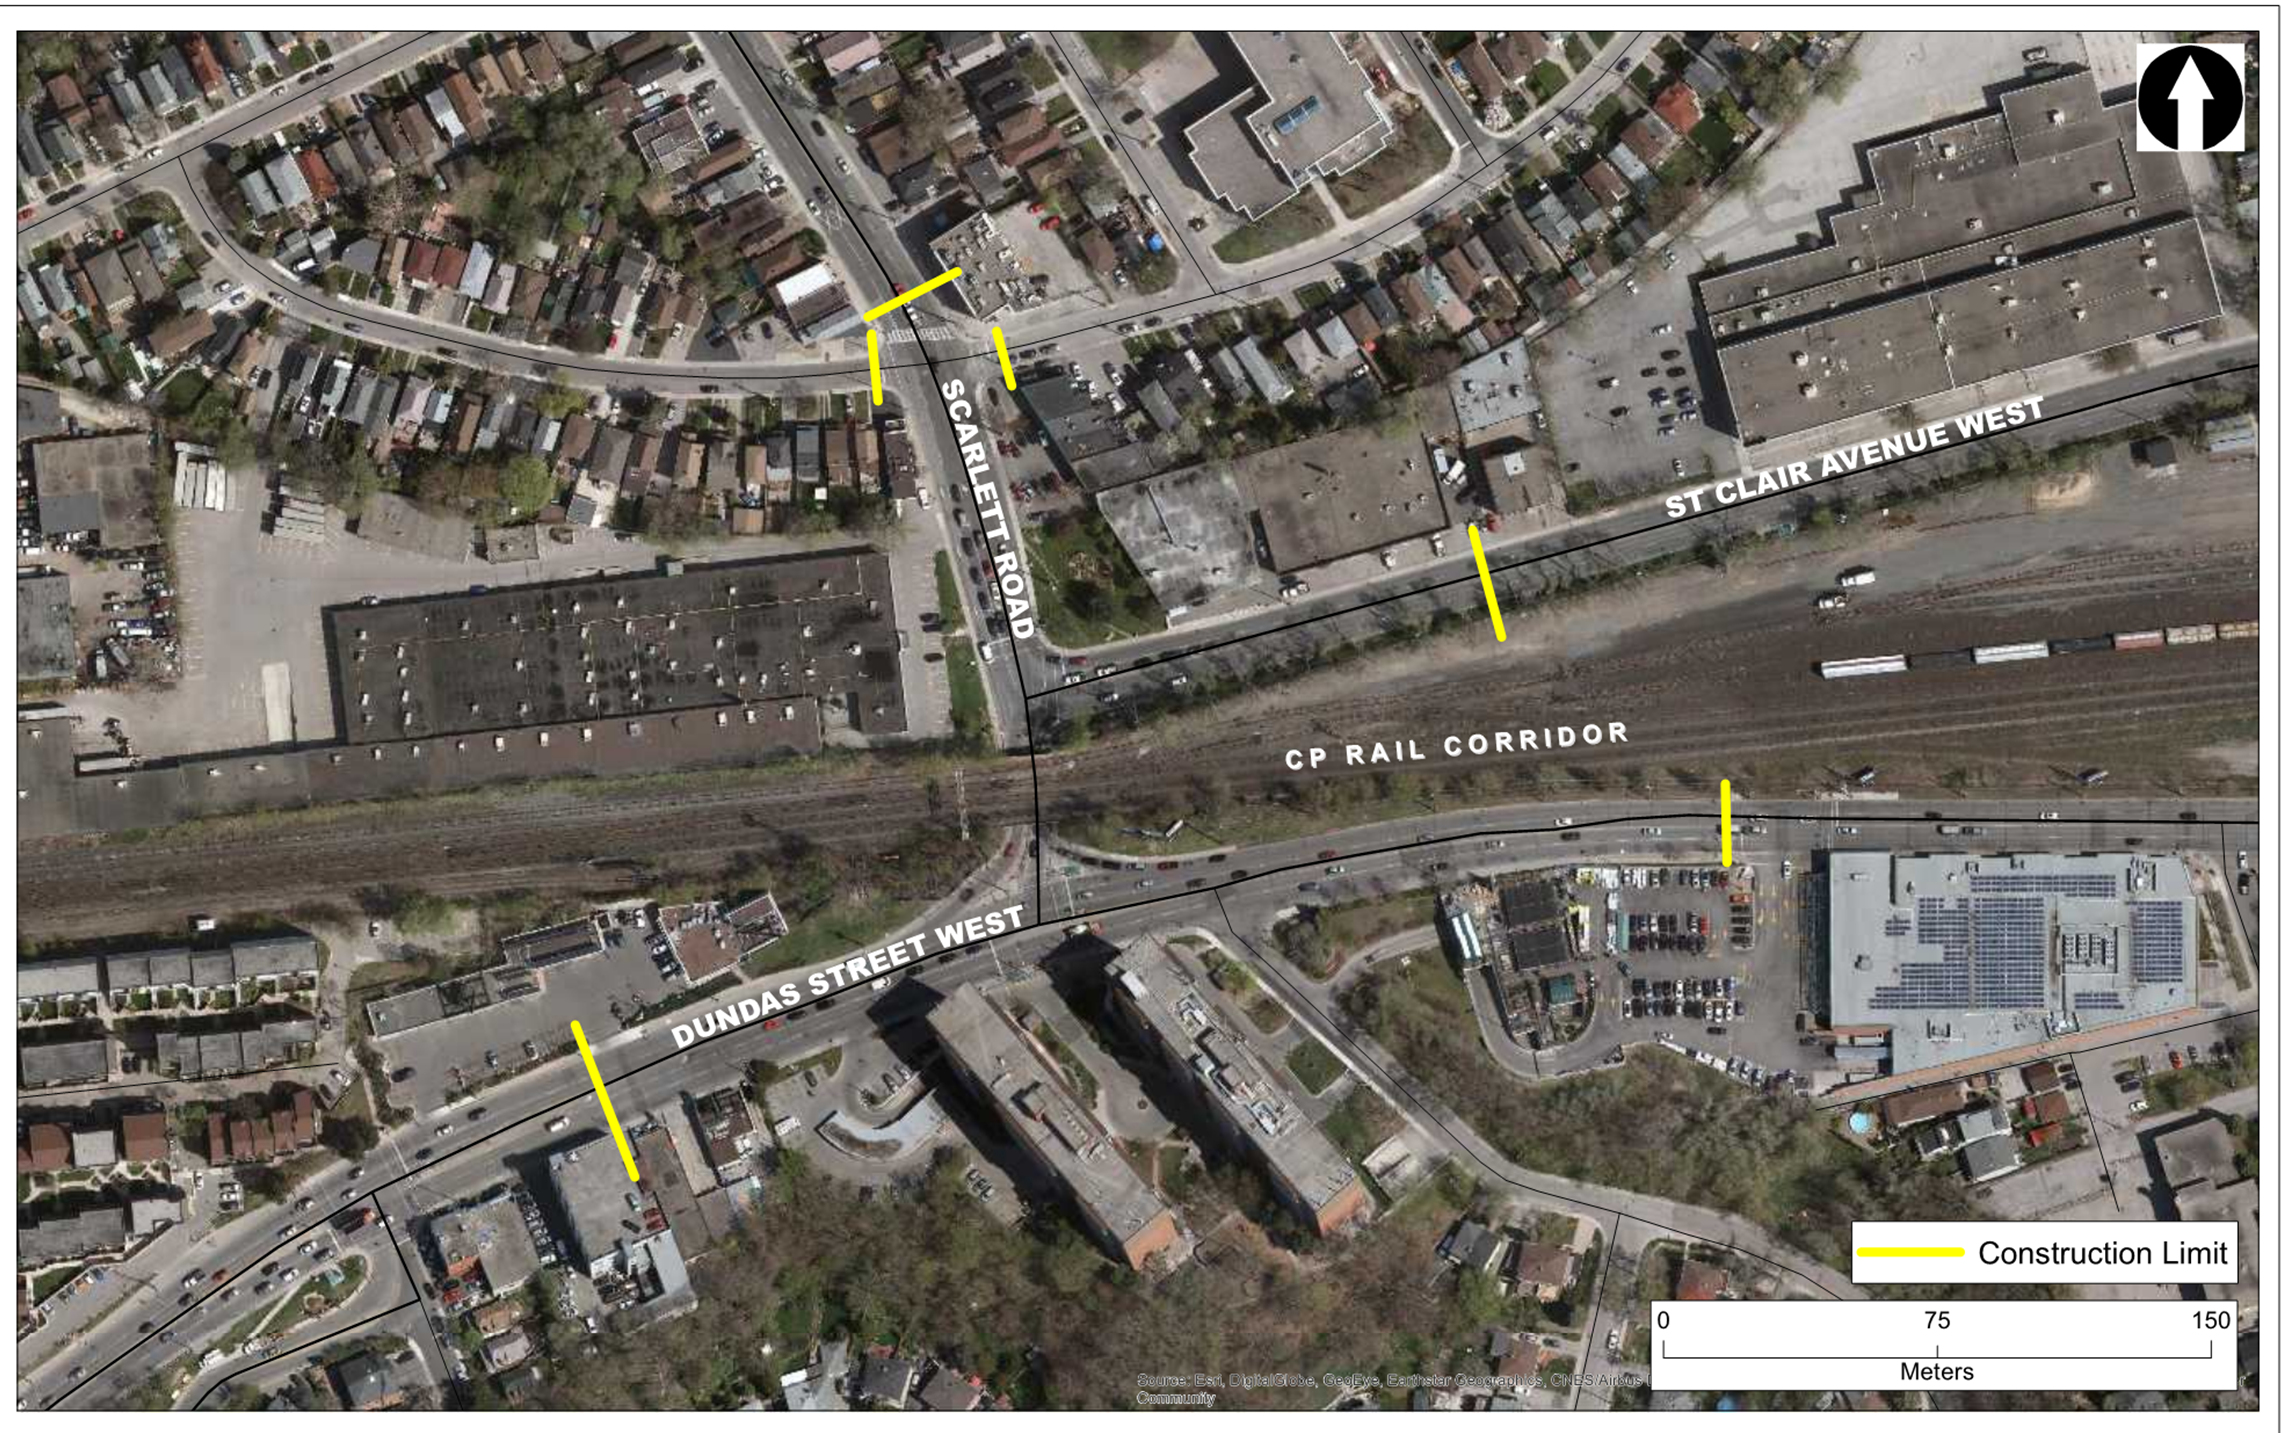 Work area is in the intersection of Dundas St W, Scarlett Road, and the CP rail corridor